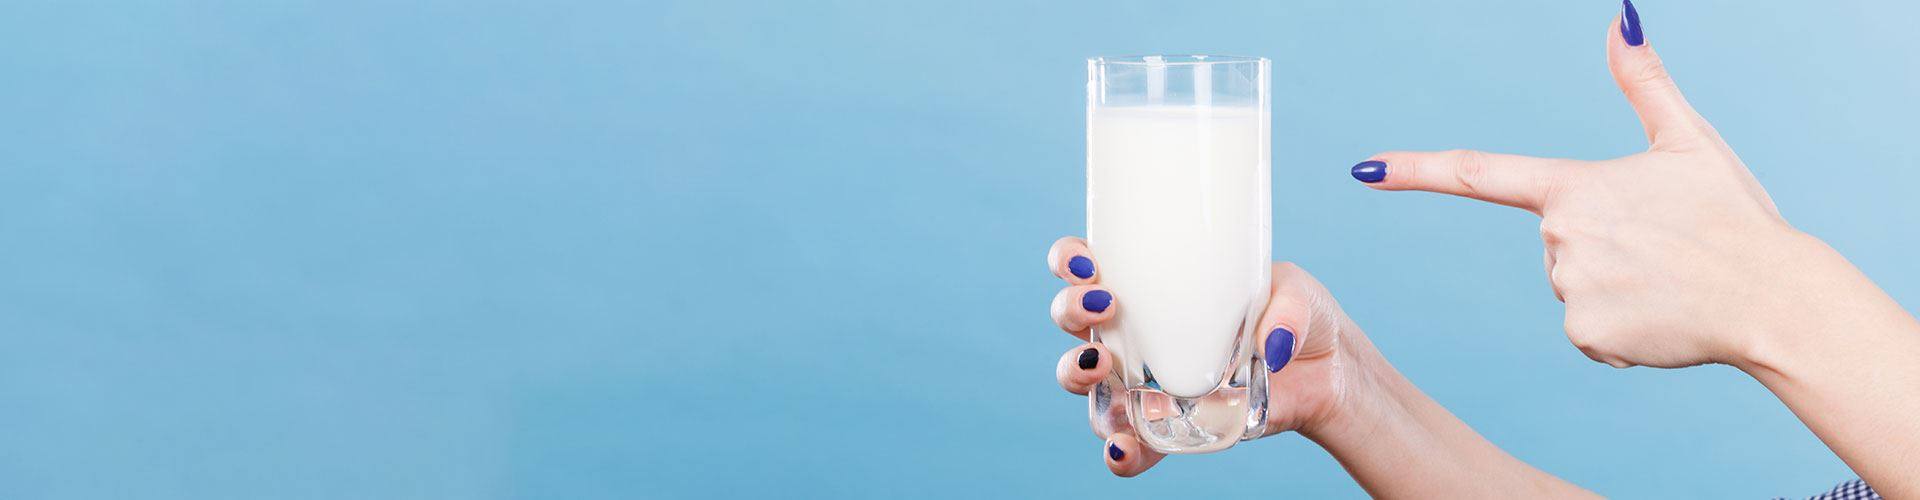 A pair of hands with purple painted nails with one hand pointing towards a glass of milk held in the other